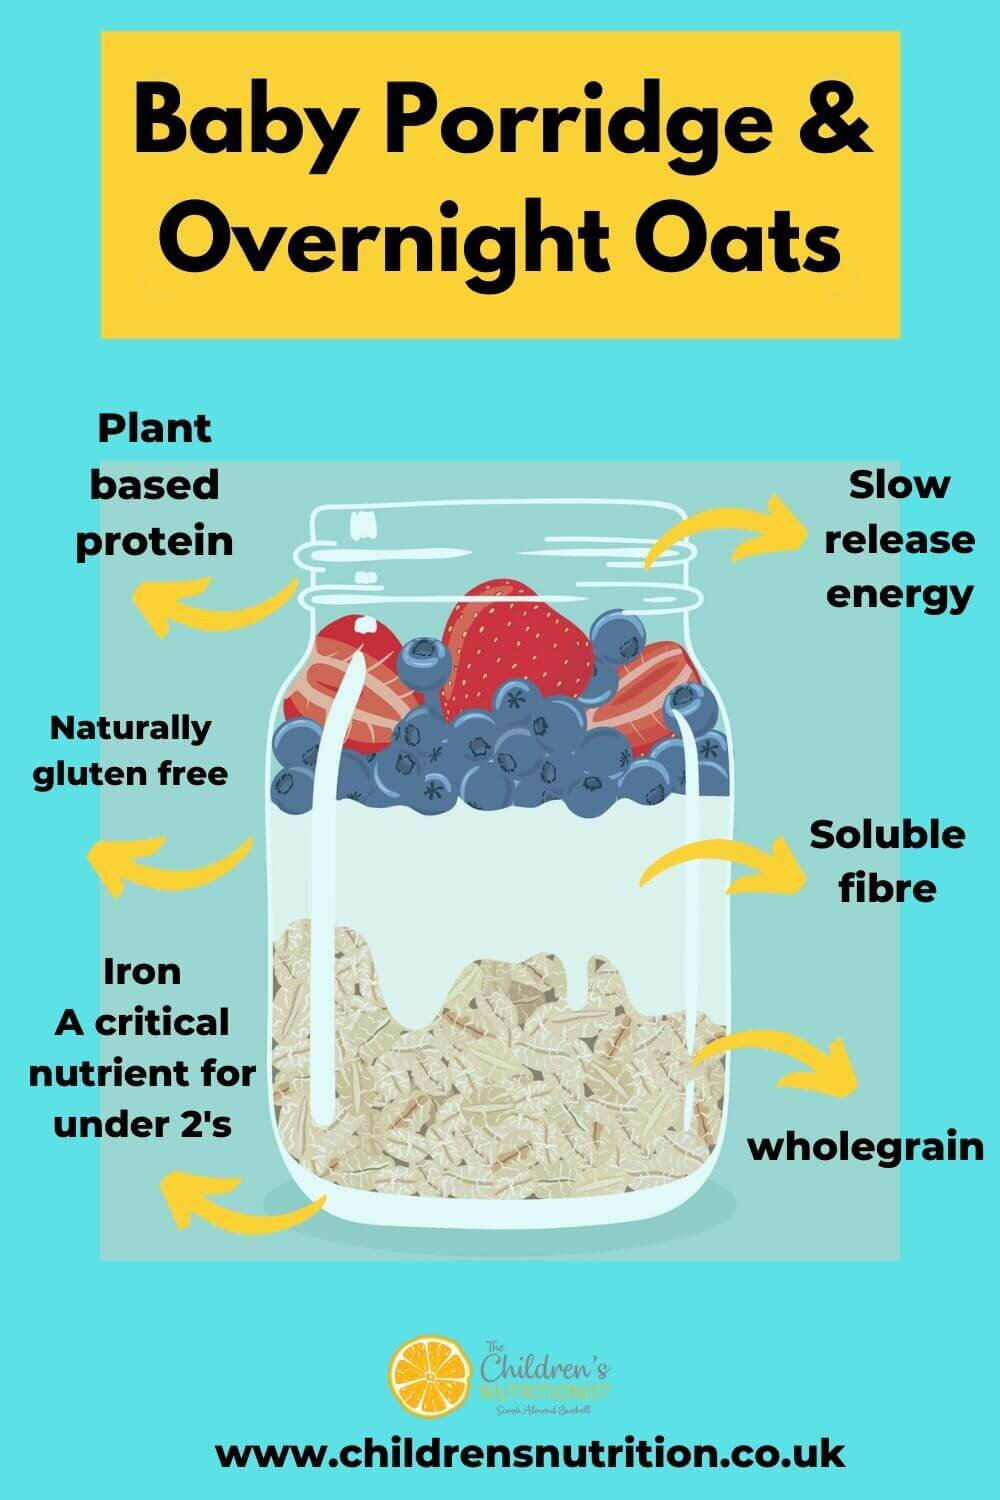 Baby Porridge and overnight oats by Sarah Almond Bushell - the Children's Nutritionist